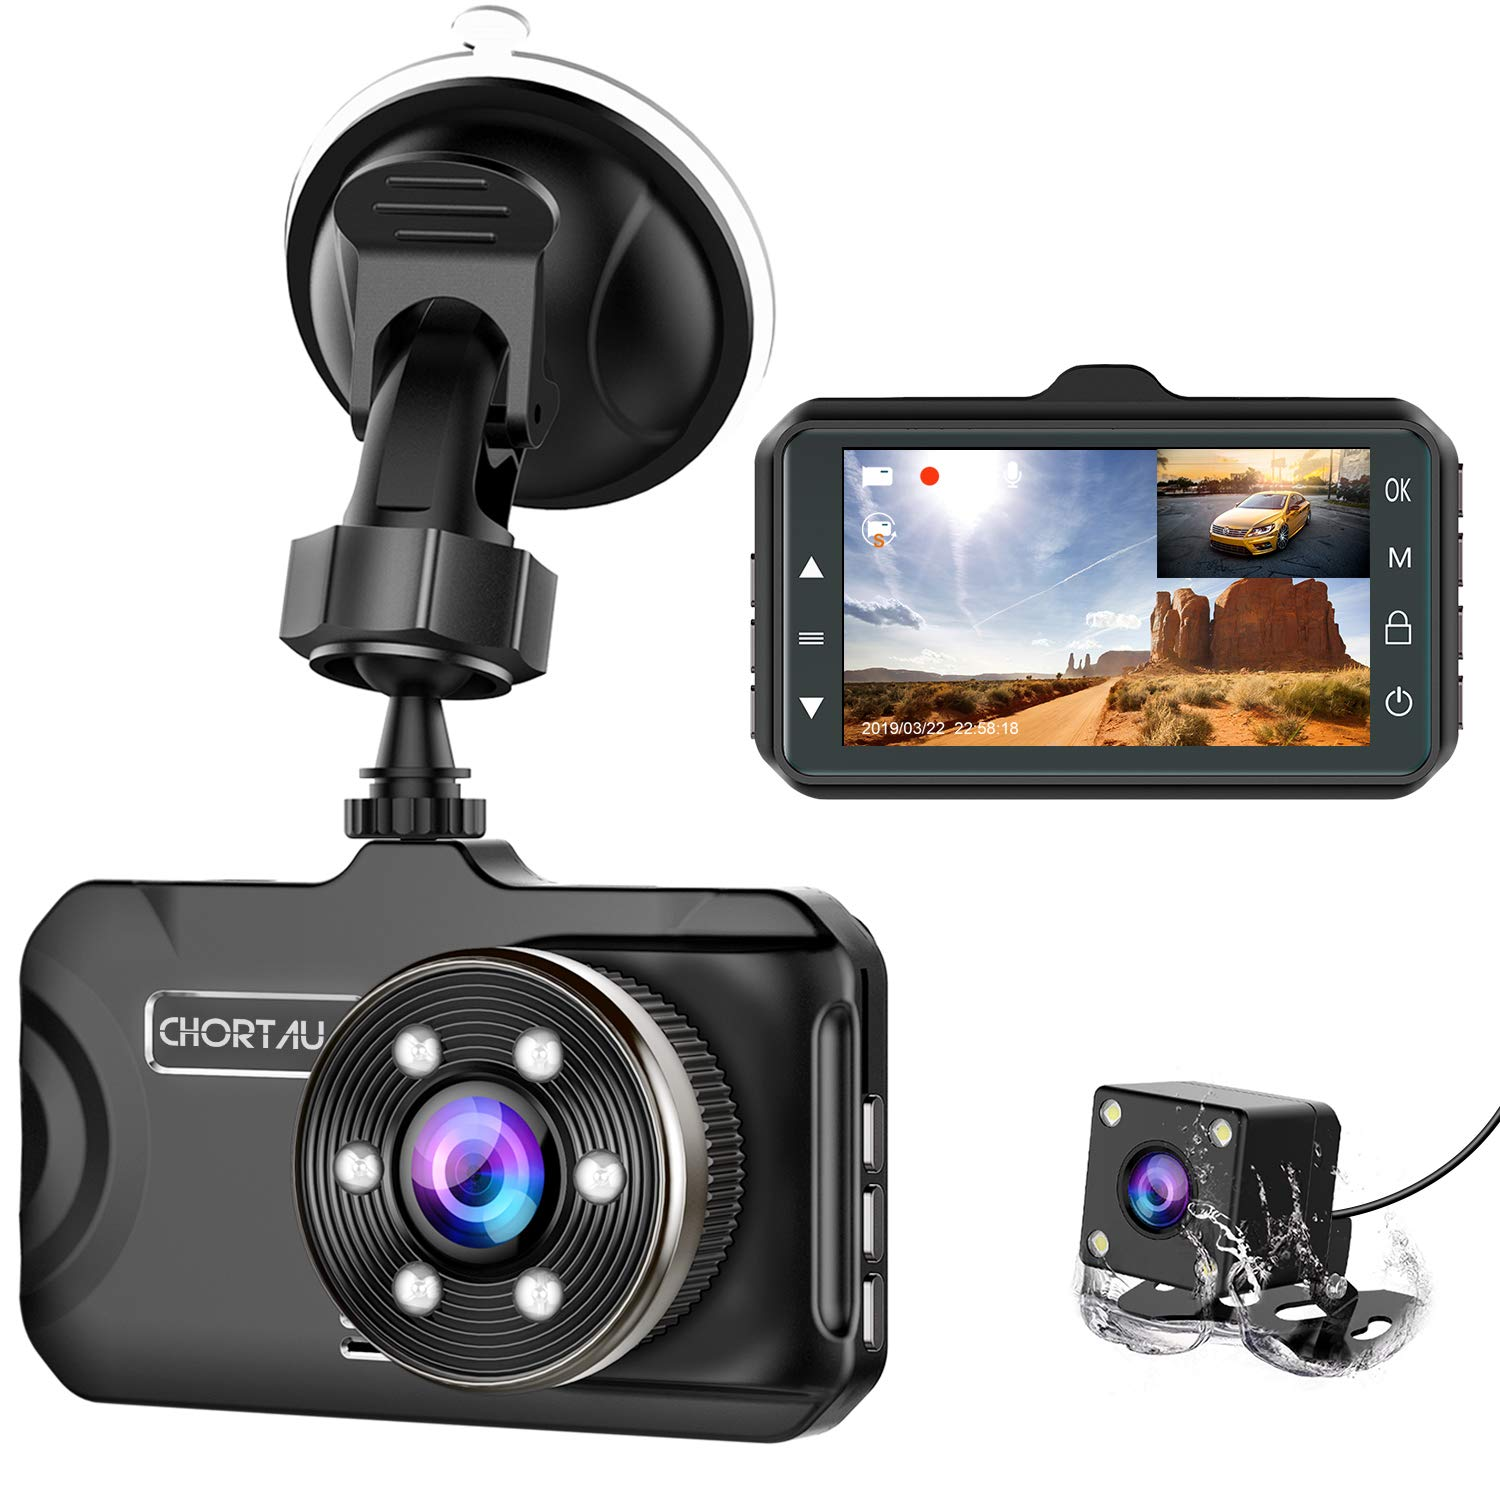 Dash Cam Front and Rear CHORTAU Dual Dash Cam 3 inch Dashboard Camera Full HD 170° Wide Angle Backup Camera with Night Vision WDR G-Sensor Parking Monitor Loop Recording Motion Detection by CHORTAU